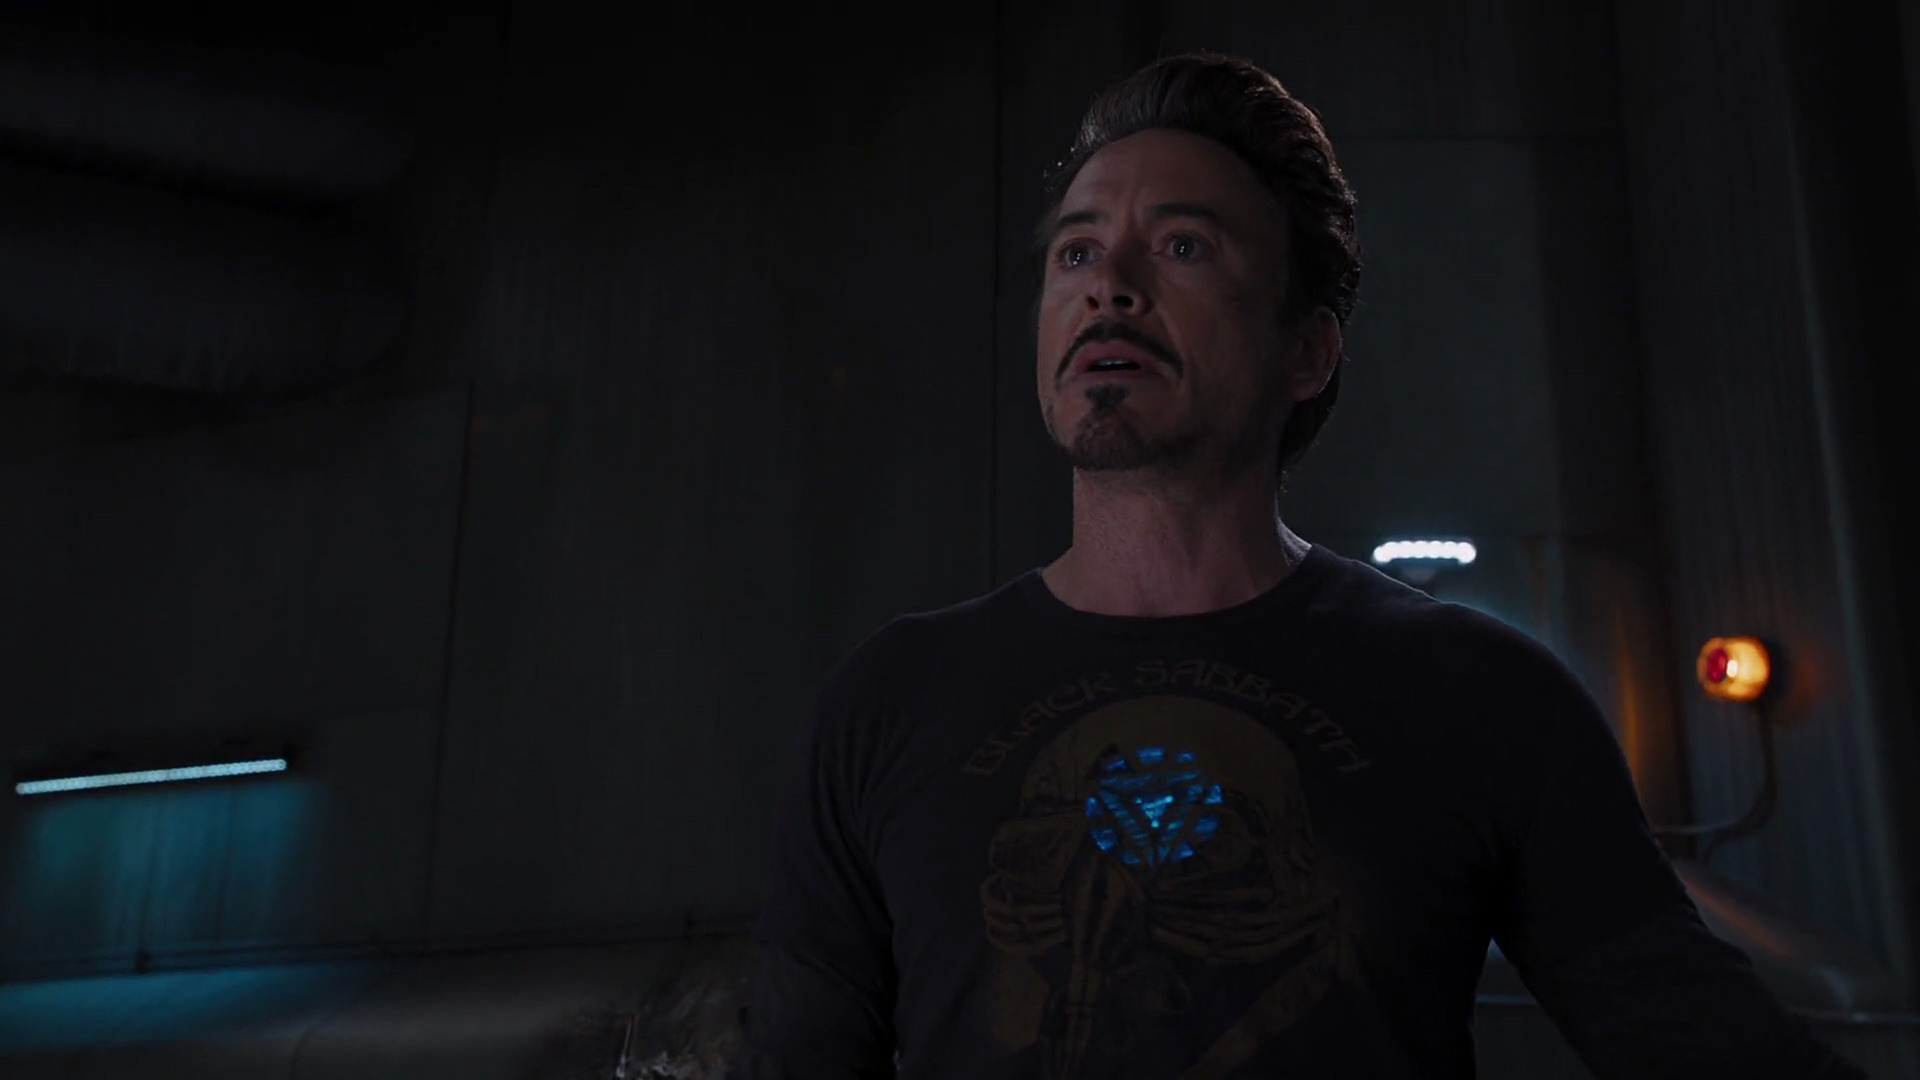 http://www.caps.media/201/2-avengers/full/avengers-movie-screencaps.com-11487.jpg